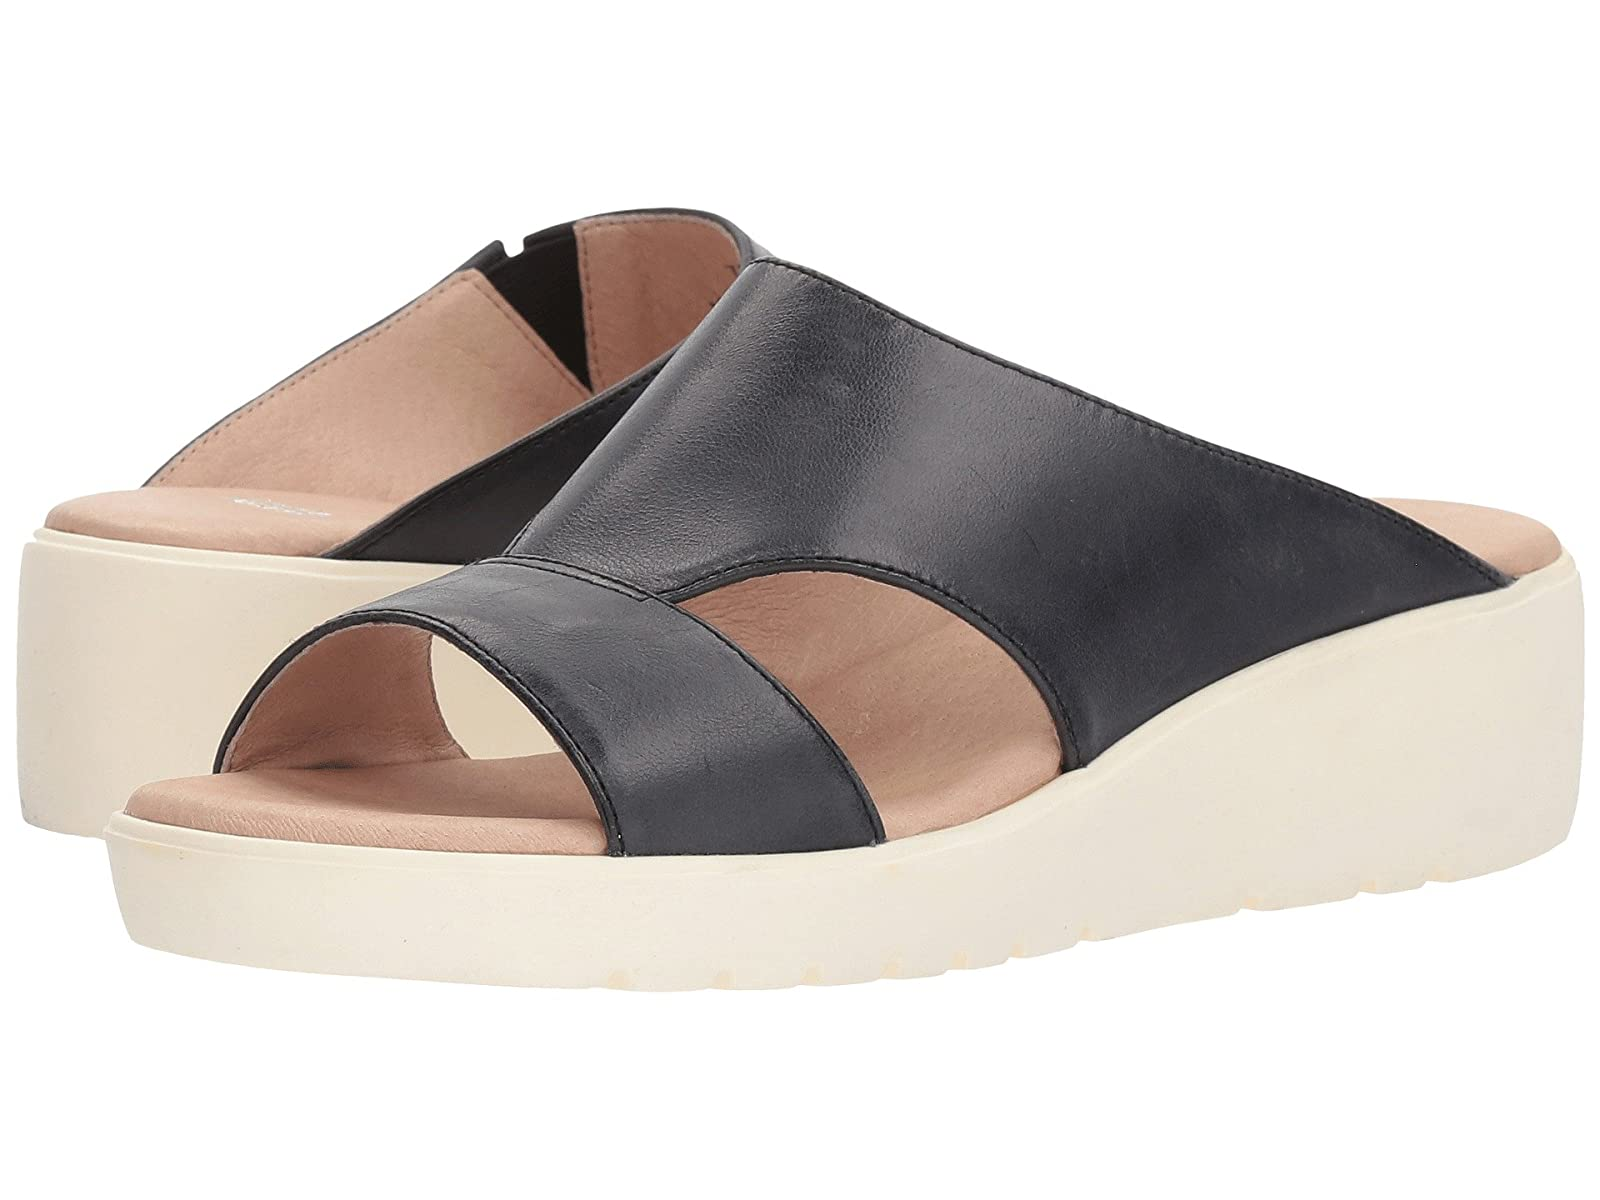 Johnston & Murphy CarlyCheap and distinctive eye-catching shoes